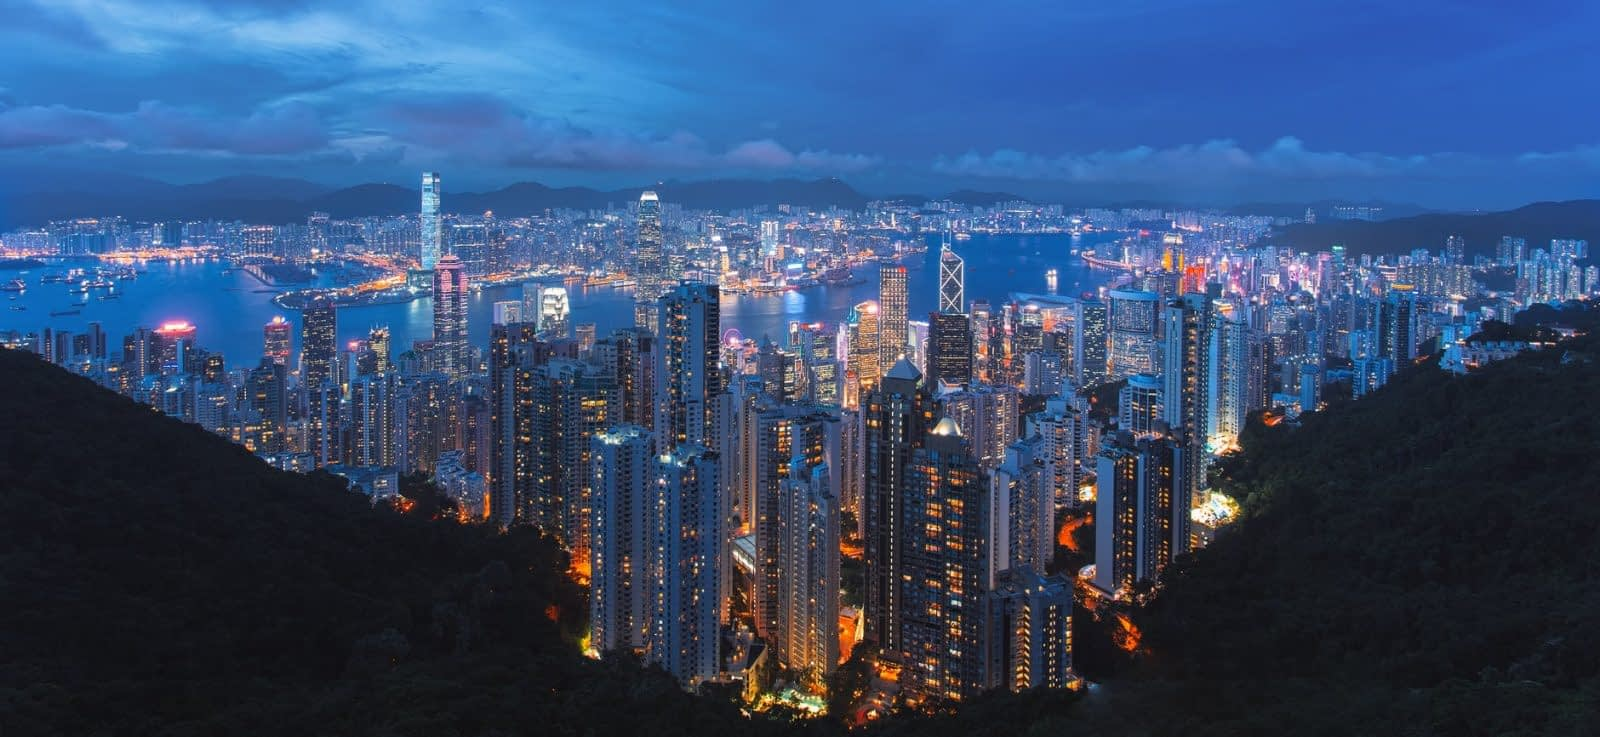 Best Things to Do at Night in Hong Kong 2